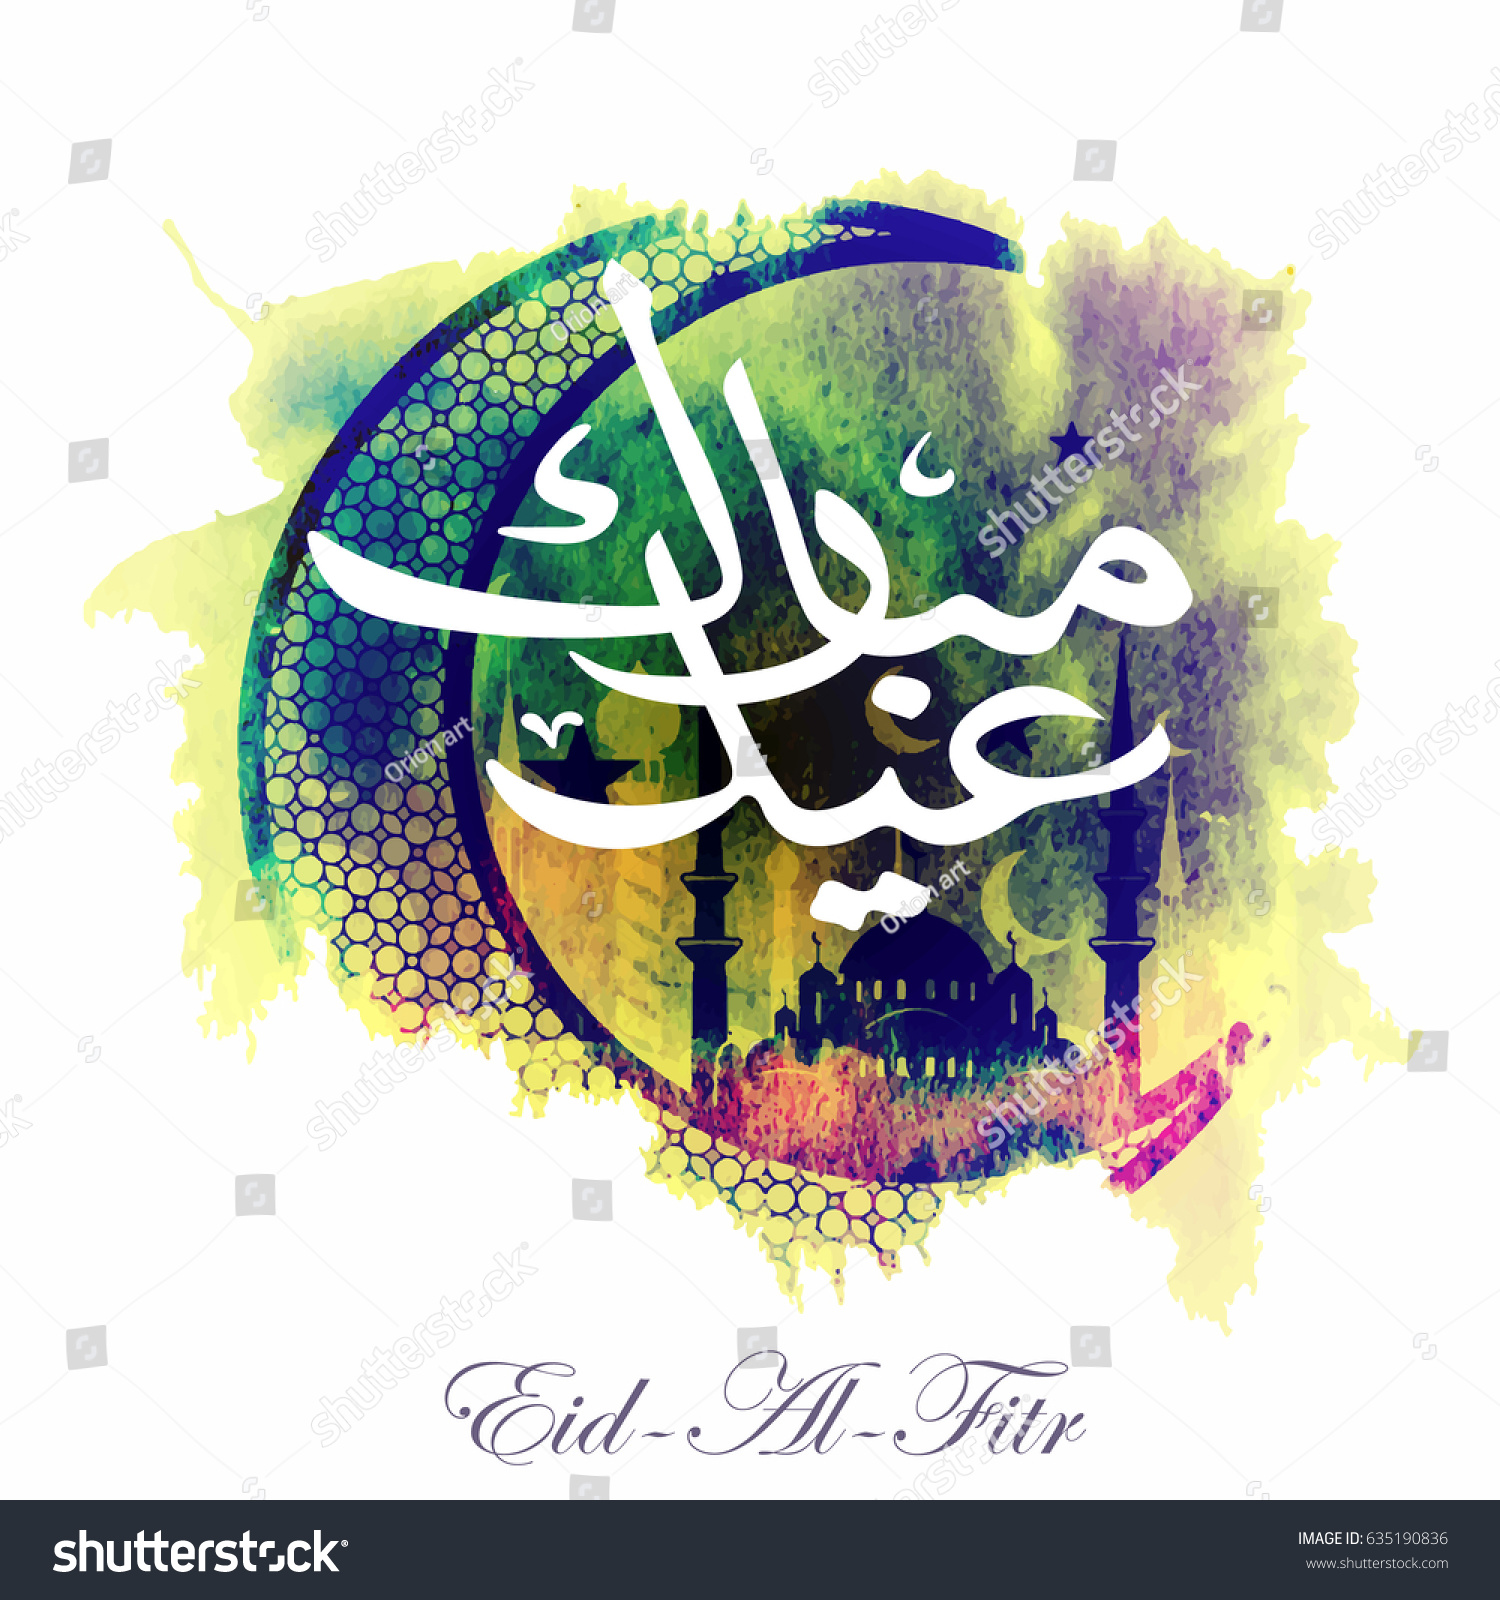 Download Idd Eid Al-Fitr Feast - stock-vector-calligraphy-of-arabic-text-eid-al-fitr-feast-of-breaking-the-fast-holiday-greeting-card-in-635190836  Collection_621918 .jpg